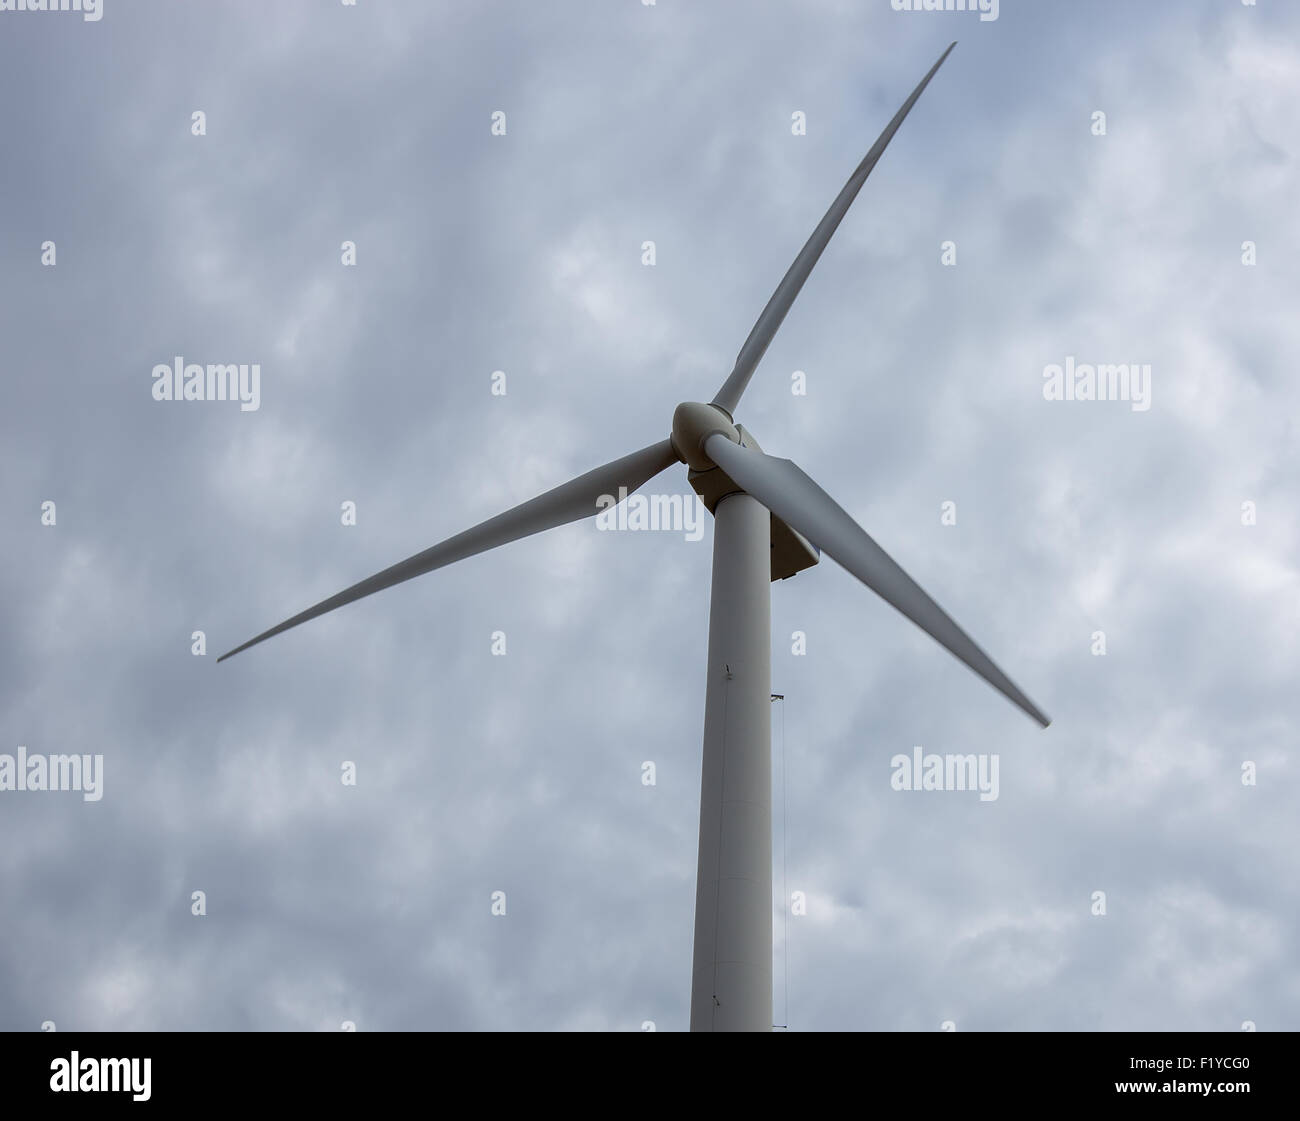 Windmills on display at the American Wind Power Center and Museum in Lubbock, Texas. - Stock Image